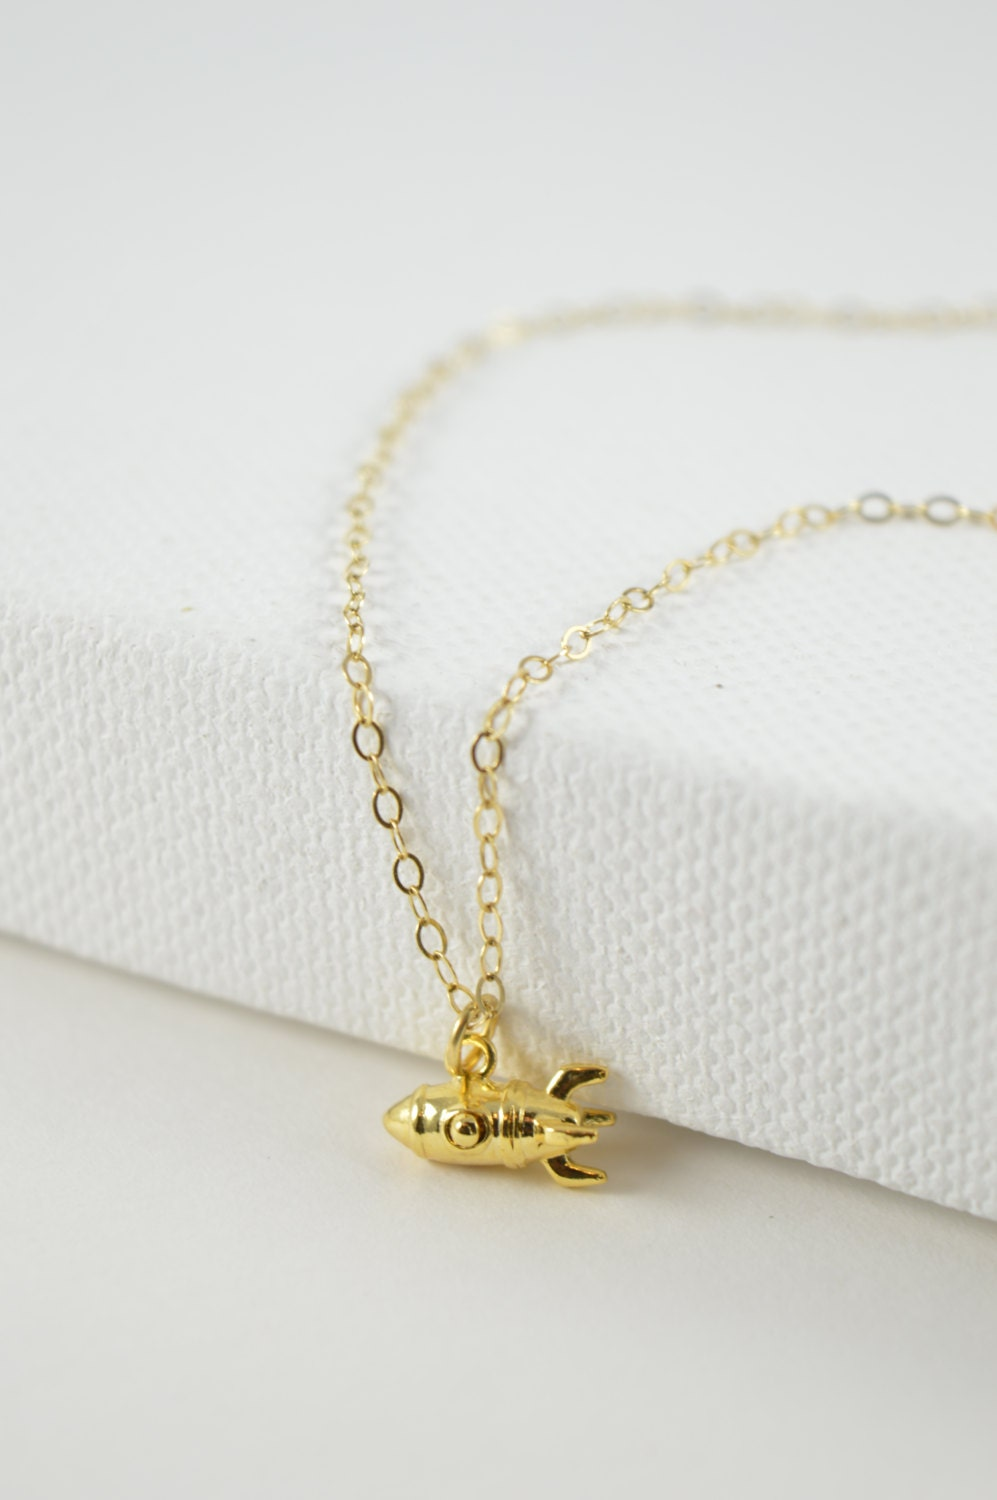 Rocket Charm Necklace, Elon Musk, Mars Rocket, Small Gold Outer ...